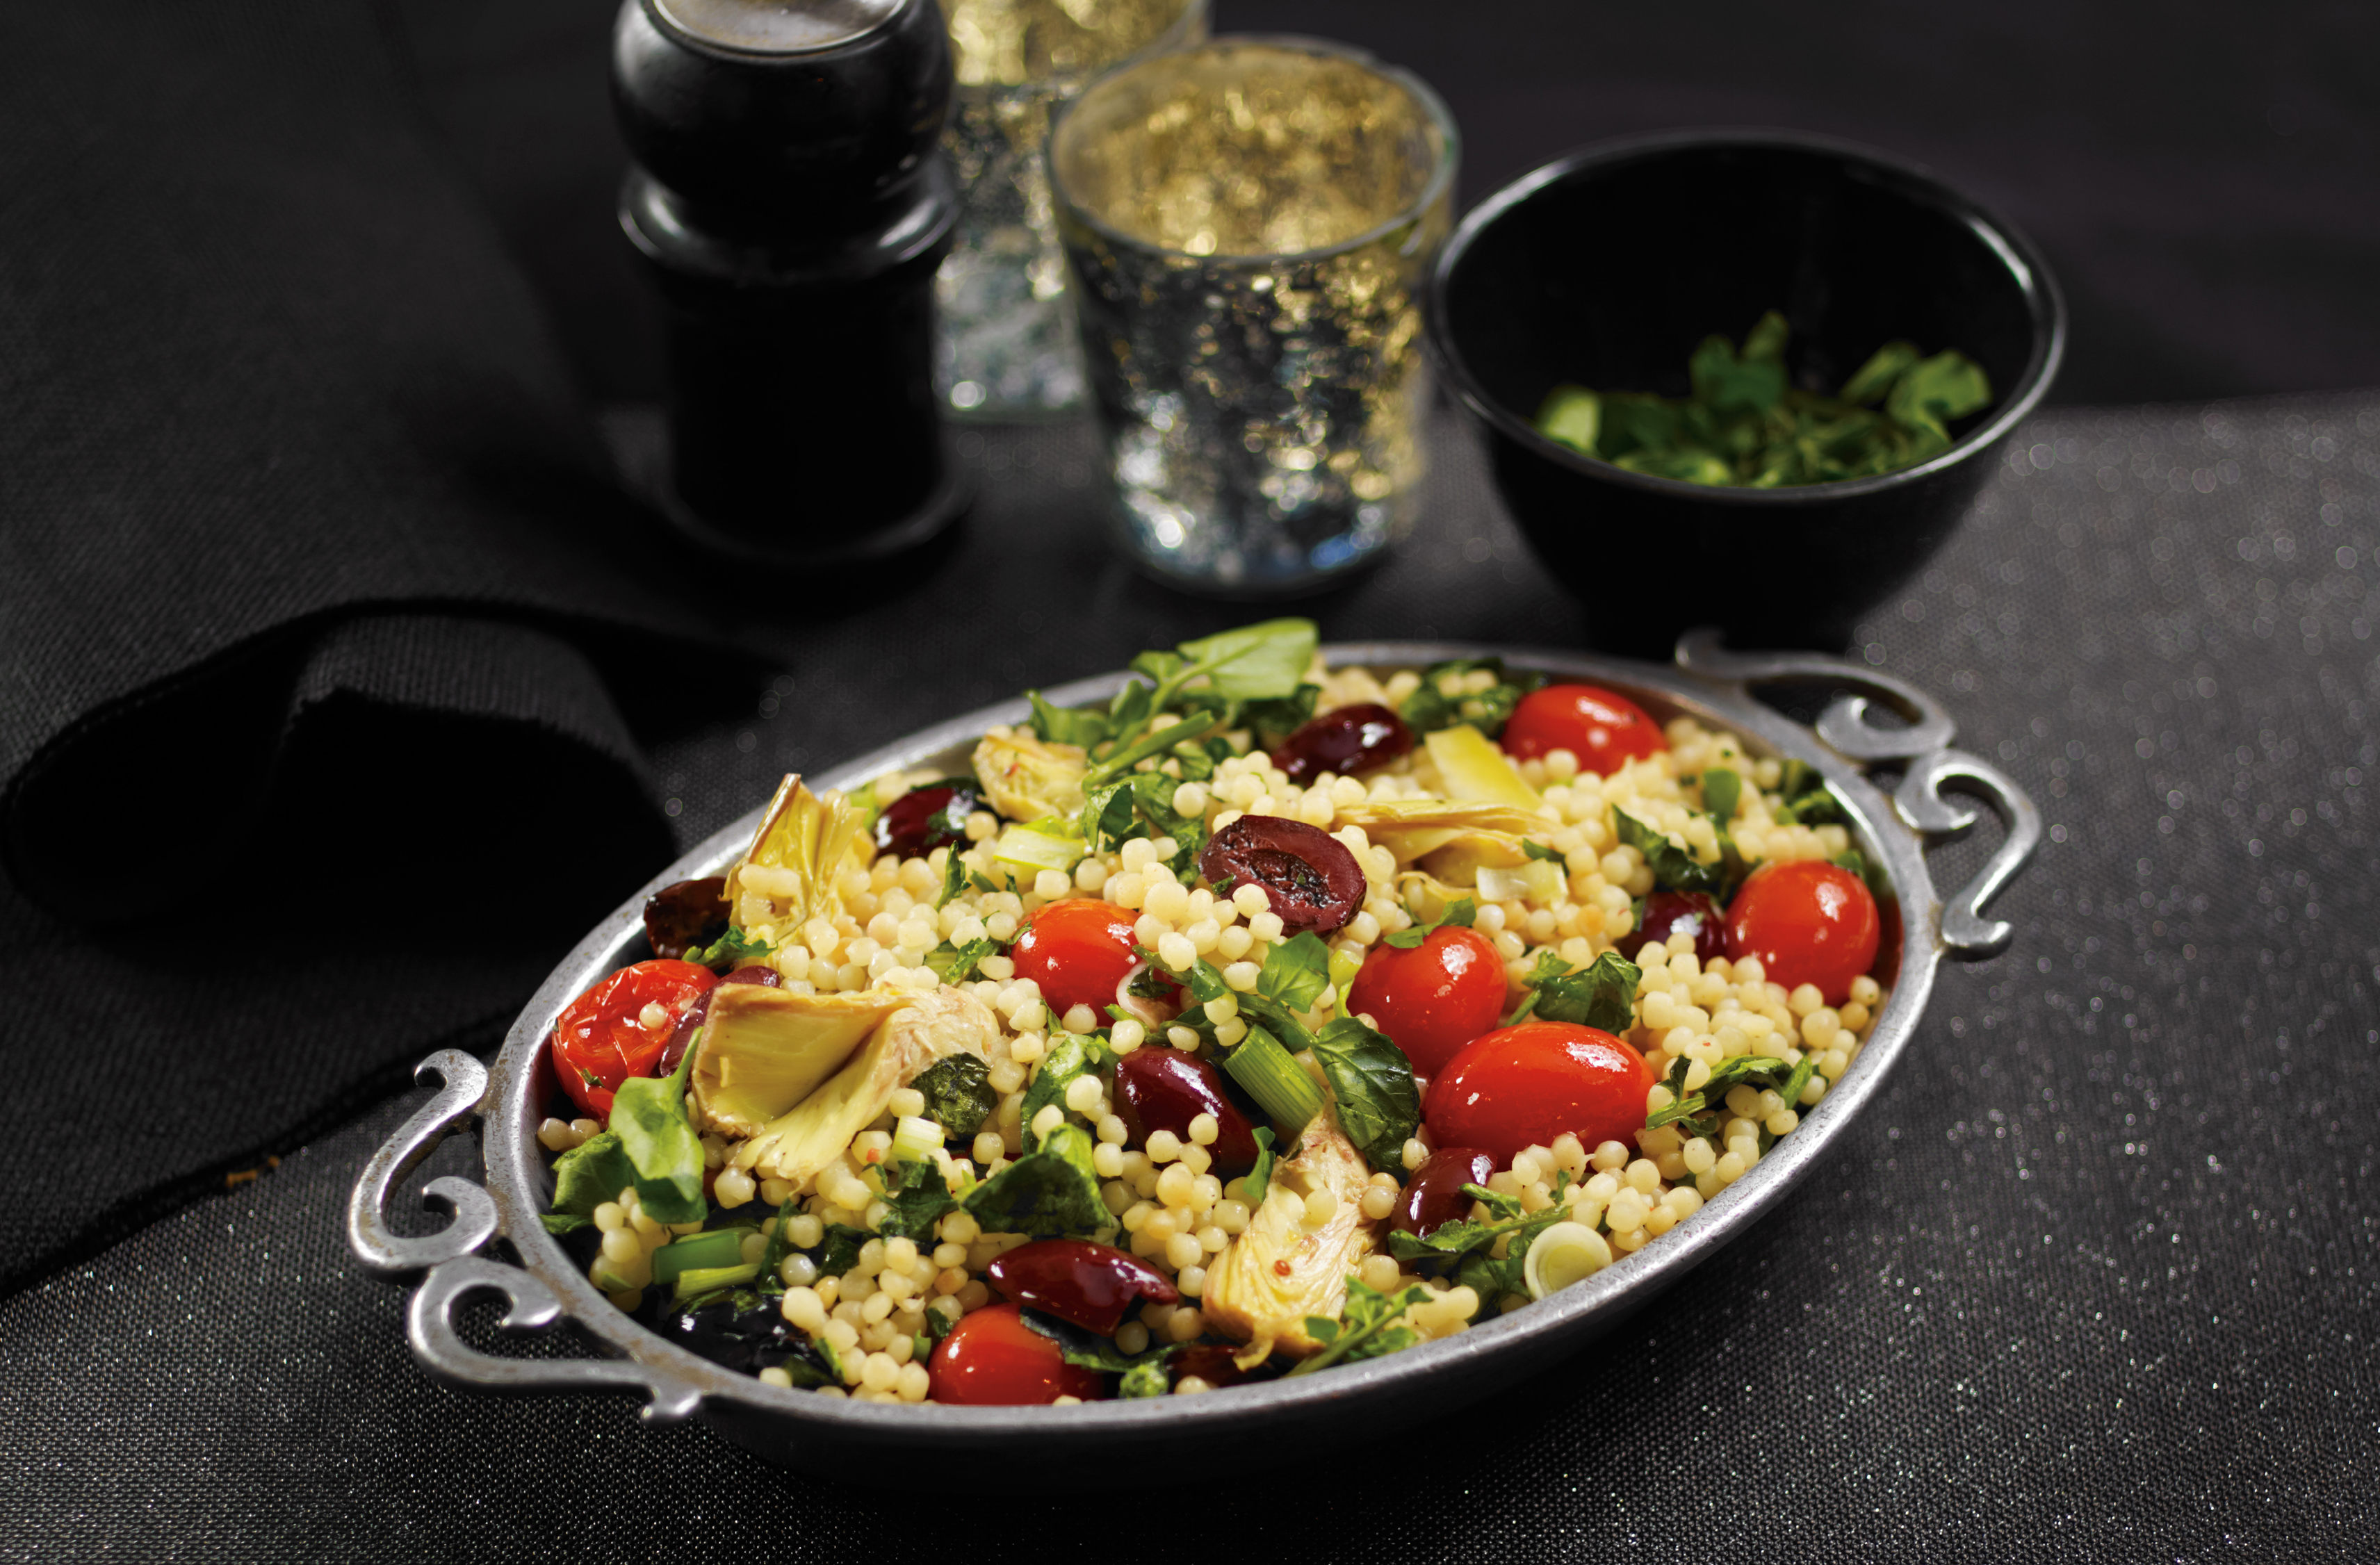 Couscous with  tomatoes, black olives, chopped artichoke hearts, watercress